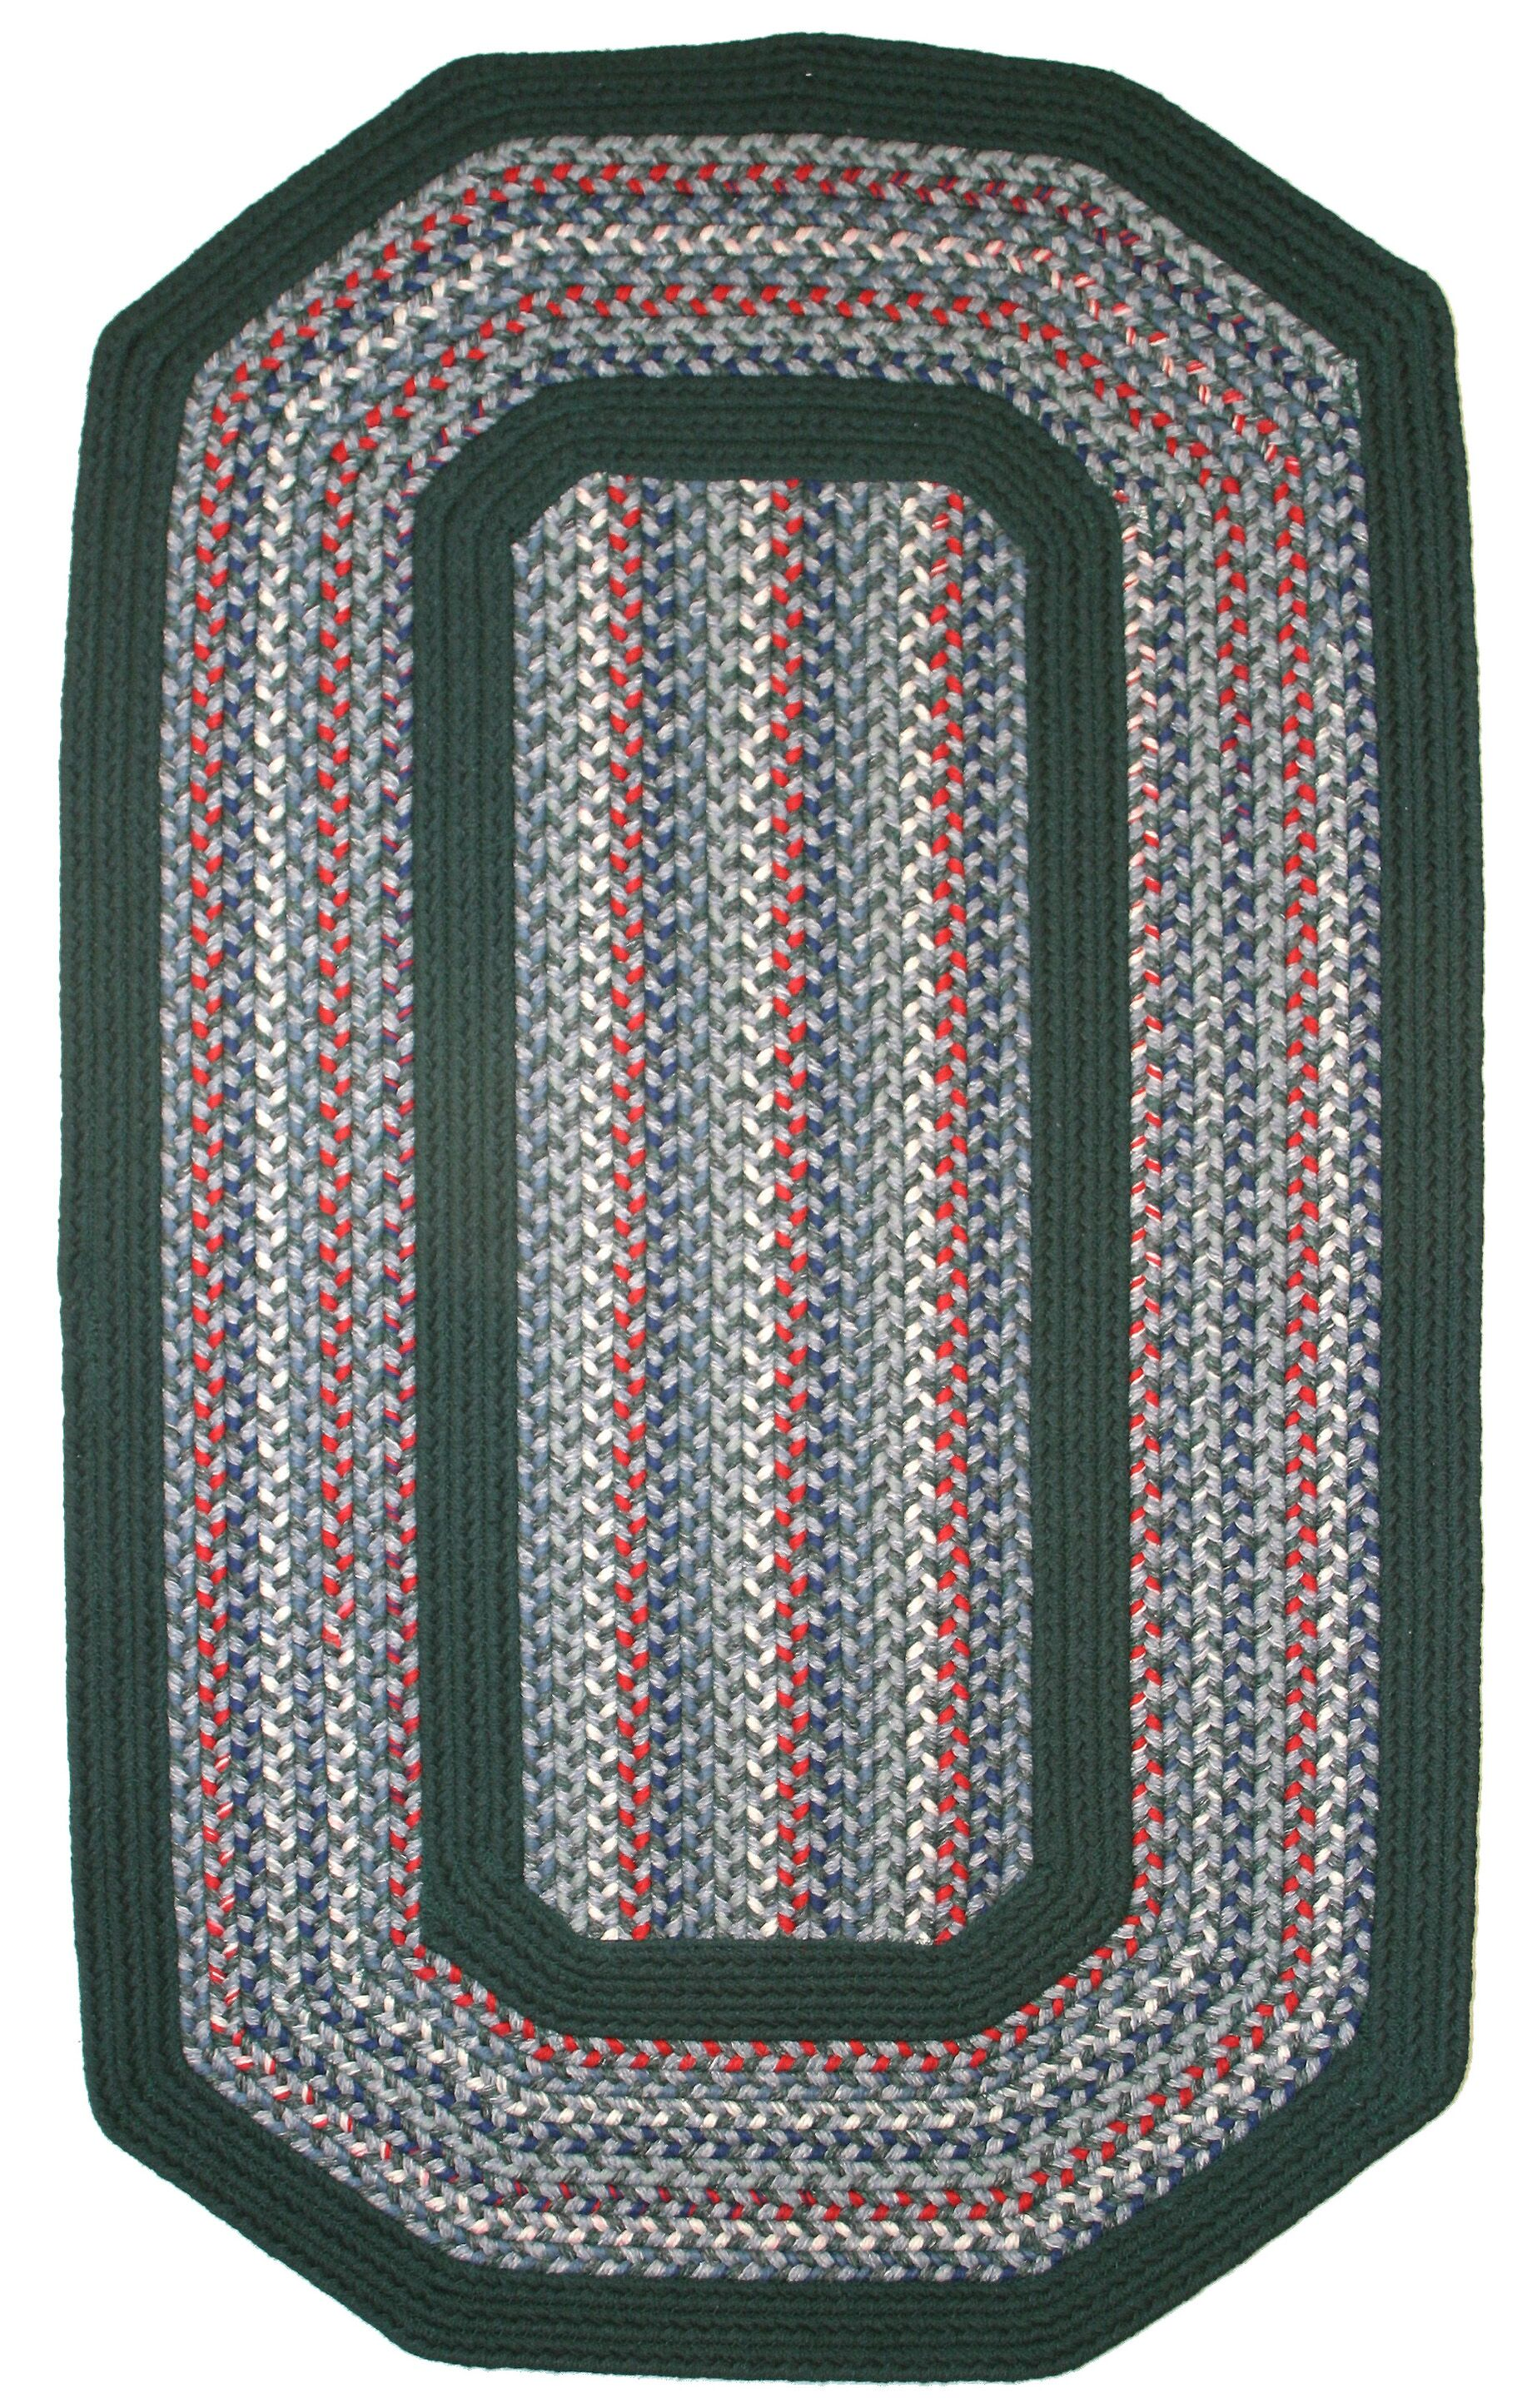 Pioneer Valley II Carribean Blue with Dark Green Solids Multi Elongated Octagon Rug Rug Size: Elongated Octagon 8' x 10'